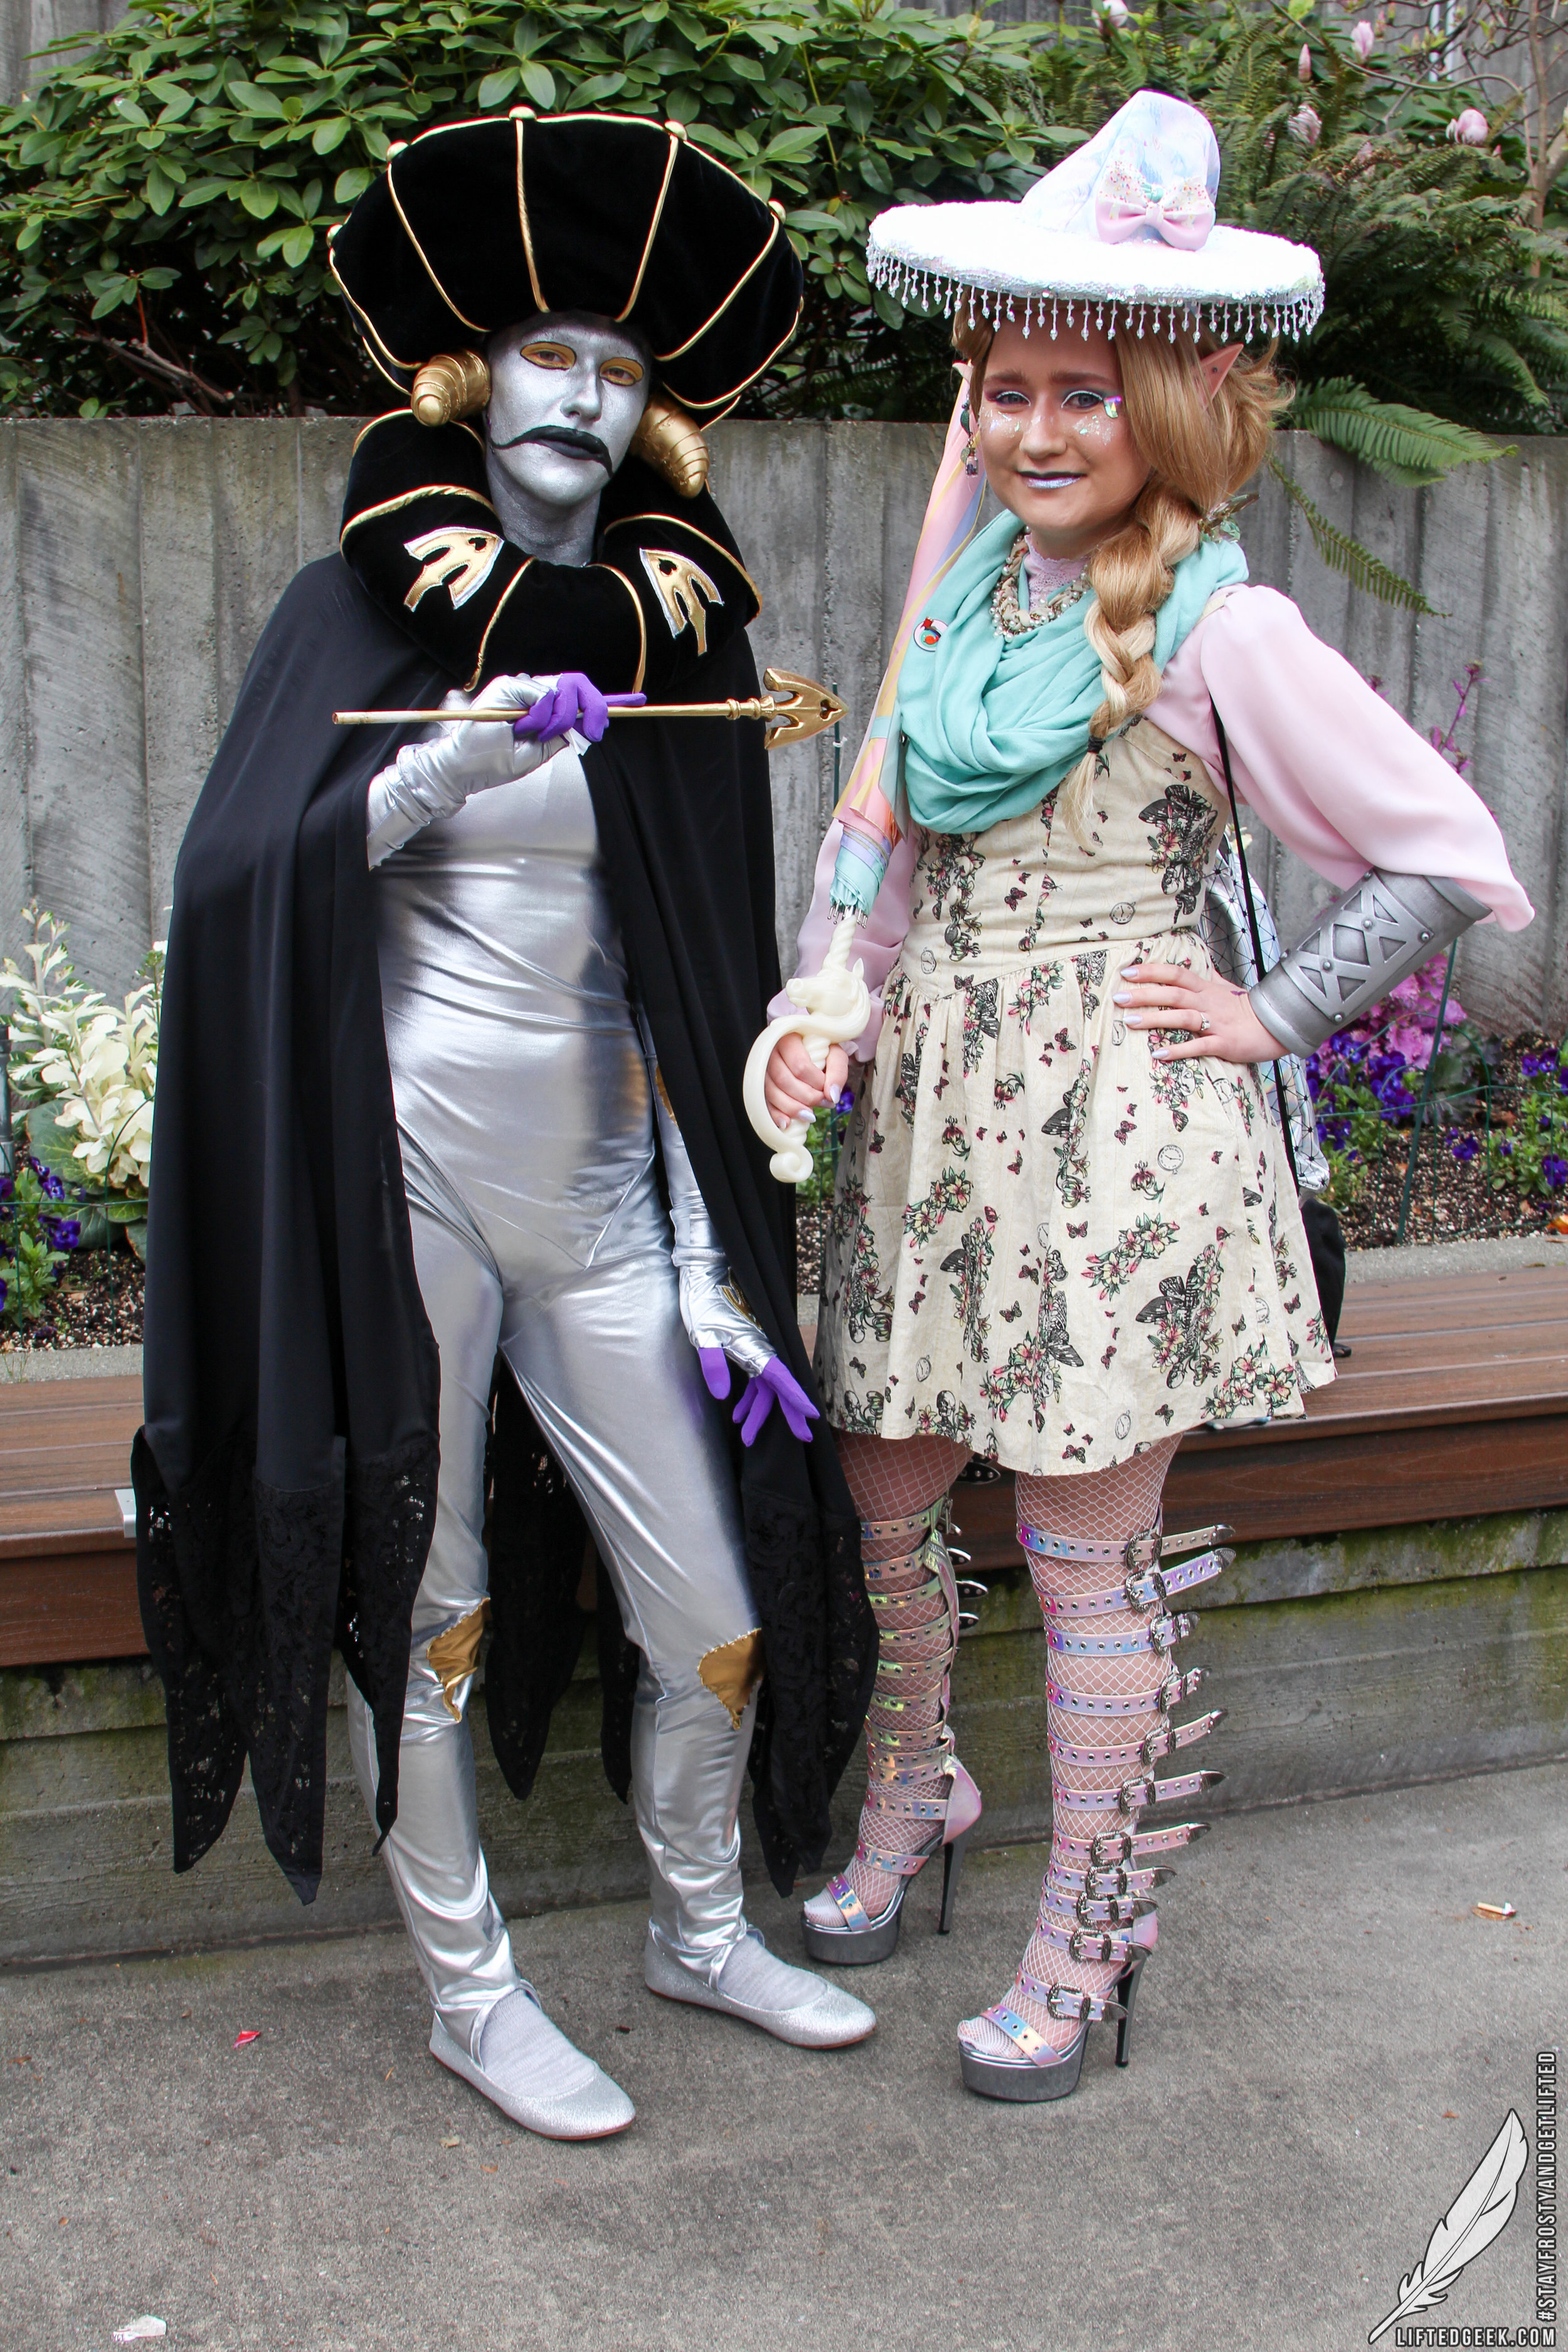 Sakuracon-cosplay-47.jpg